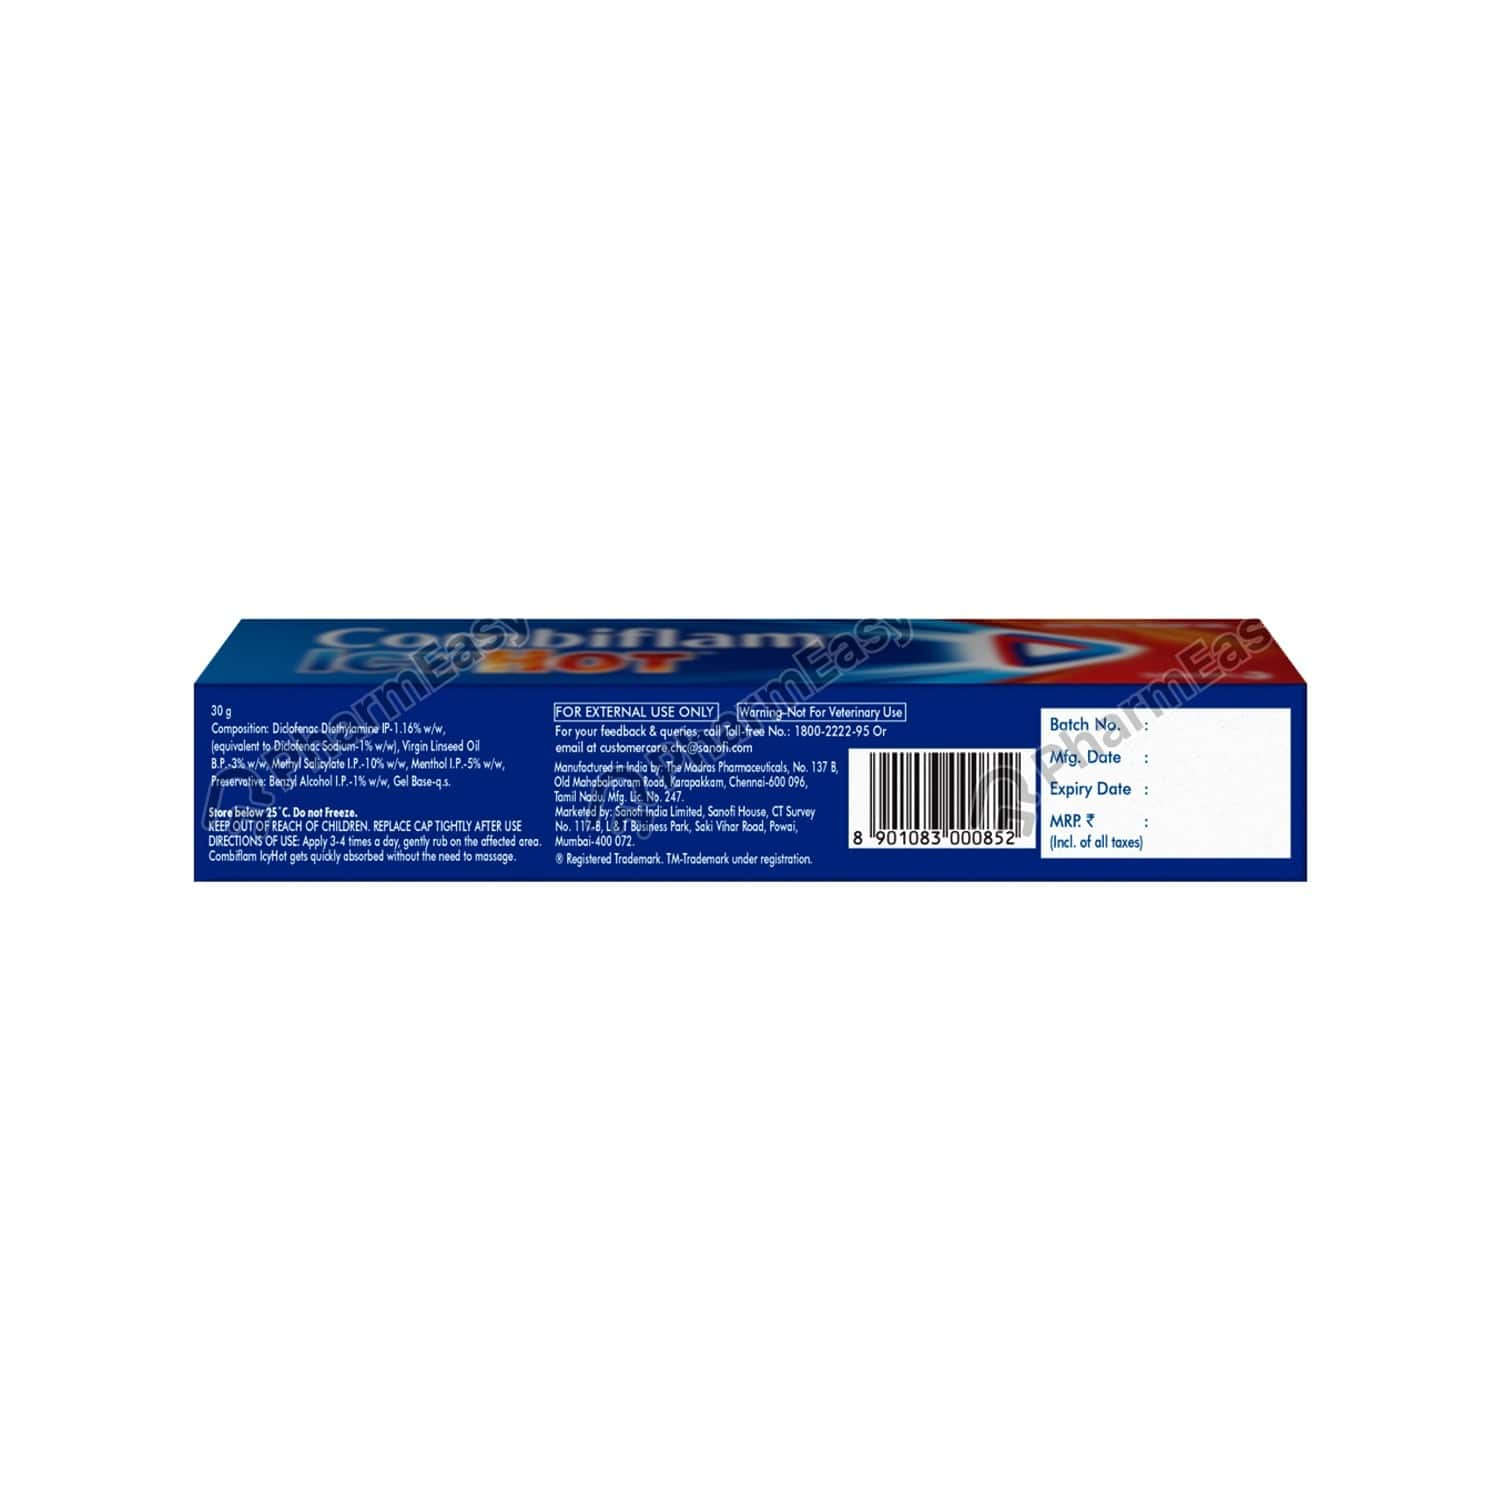 Combiflam Icyhot Fast Pain Relief Gel - 30 Gms Tube